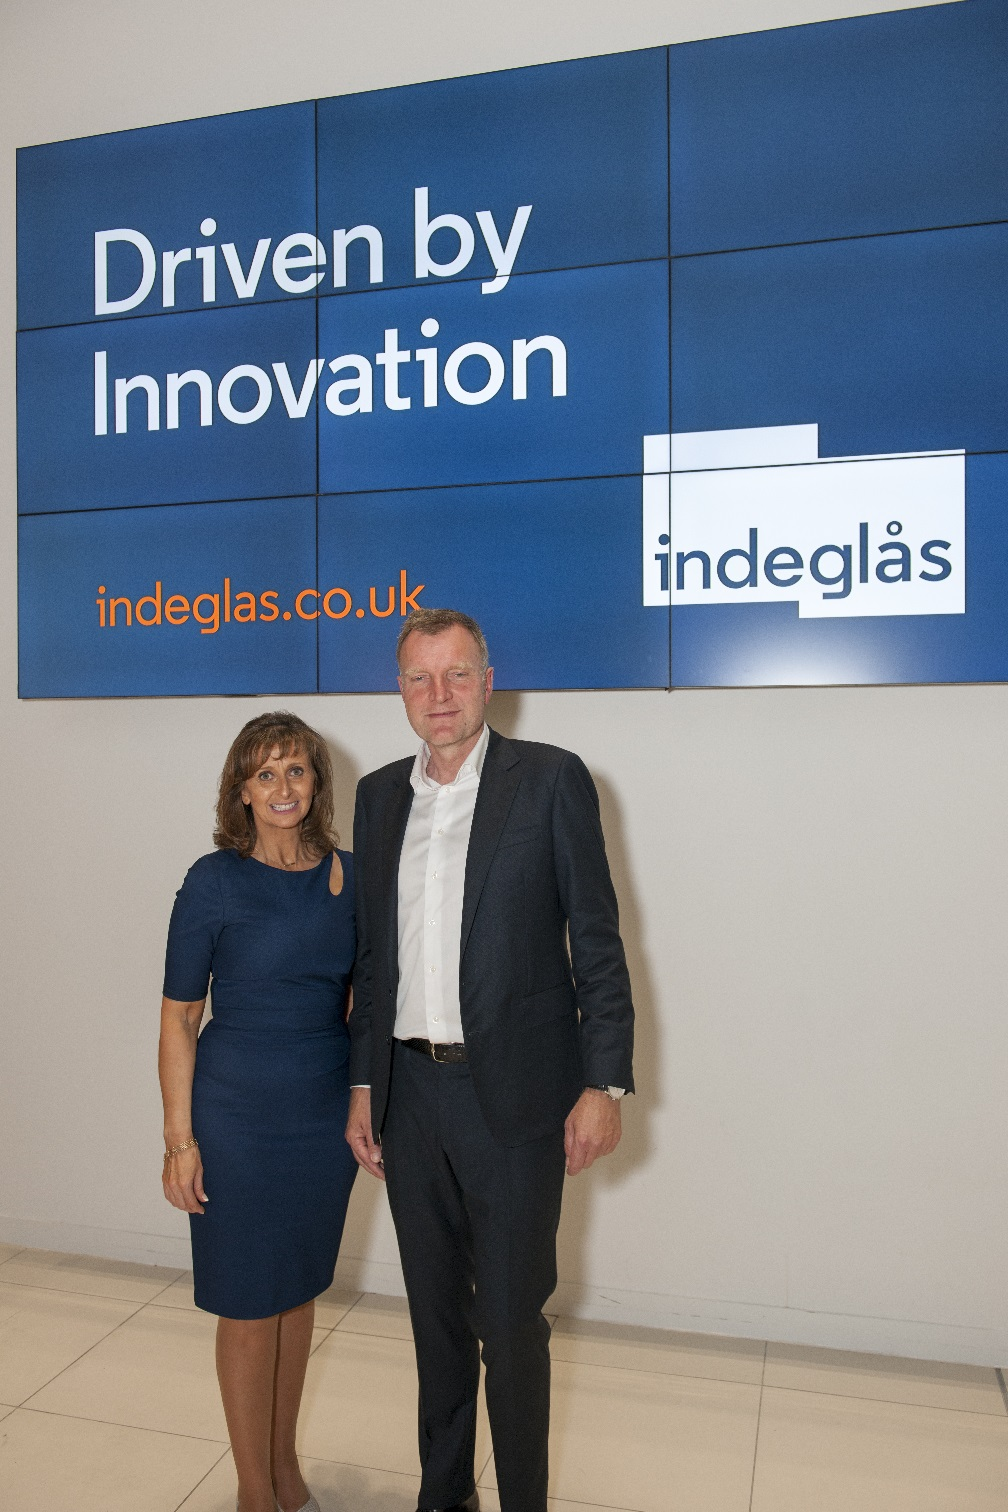 Deko Scotland Announced That it will be Rebranding Itself as Indeglas